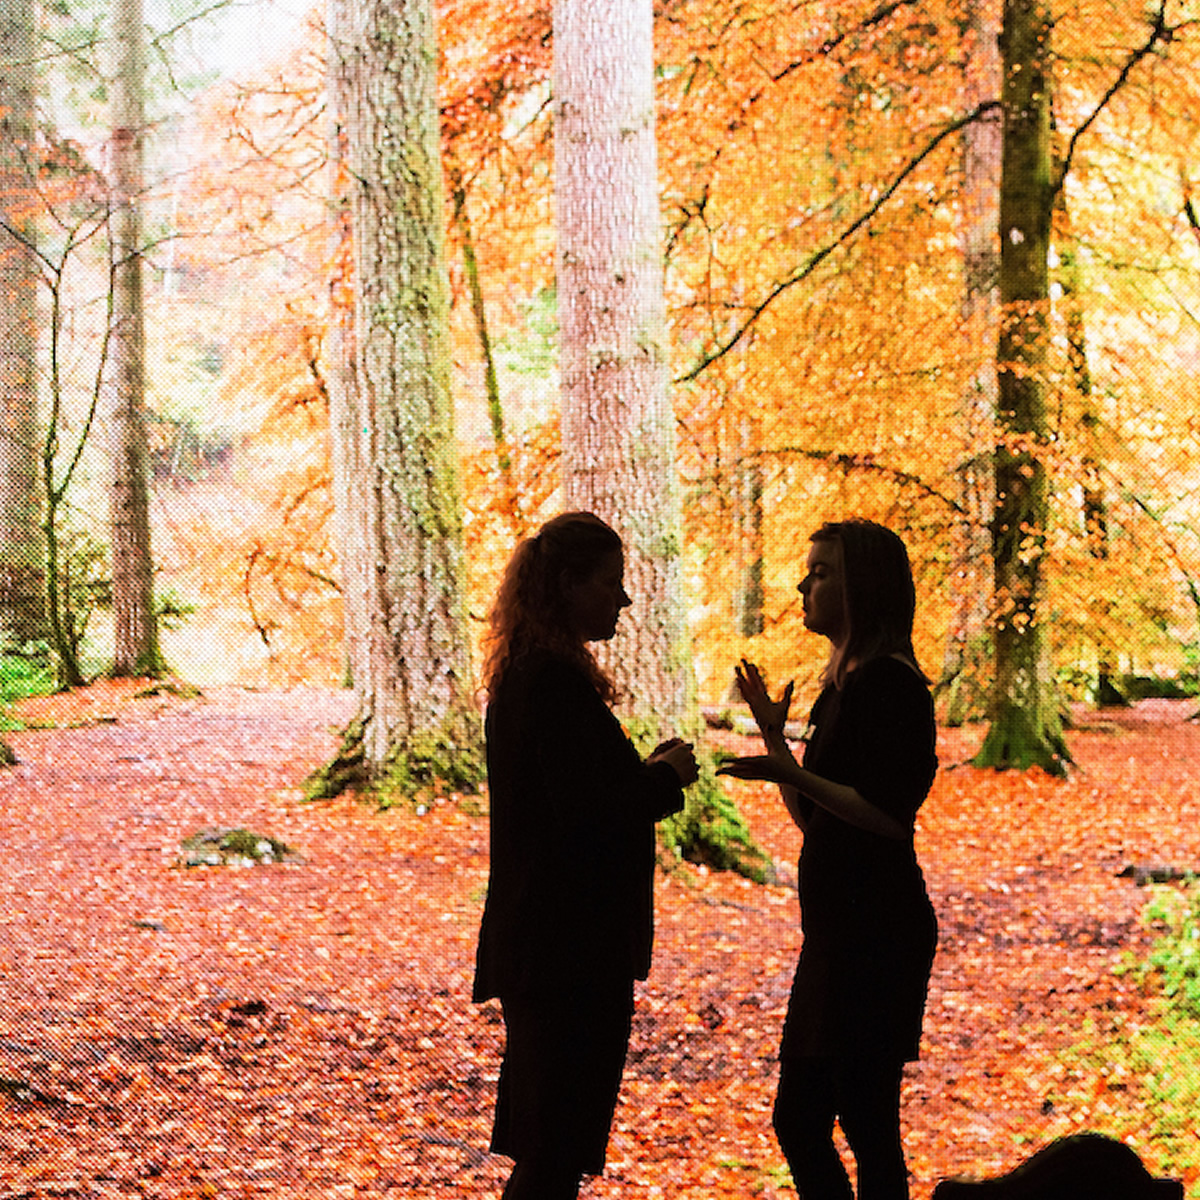 Women talking with forest background